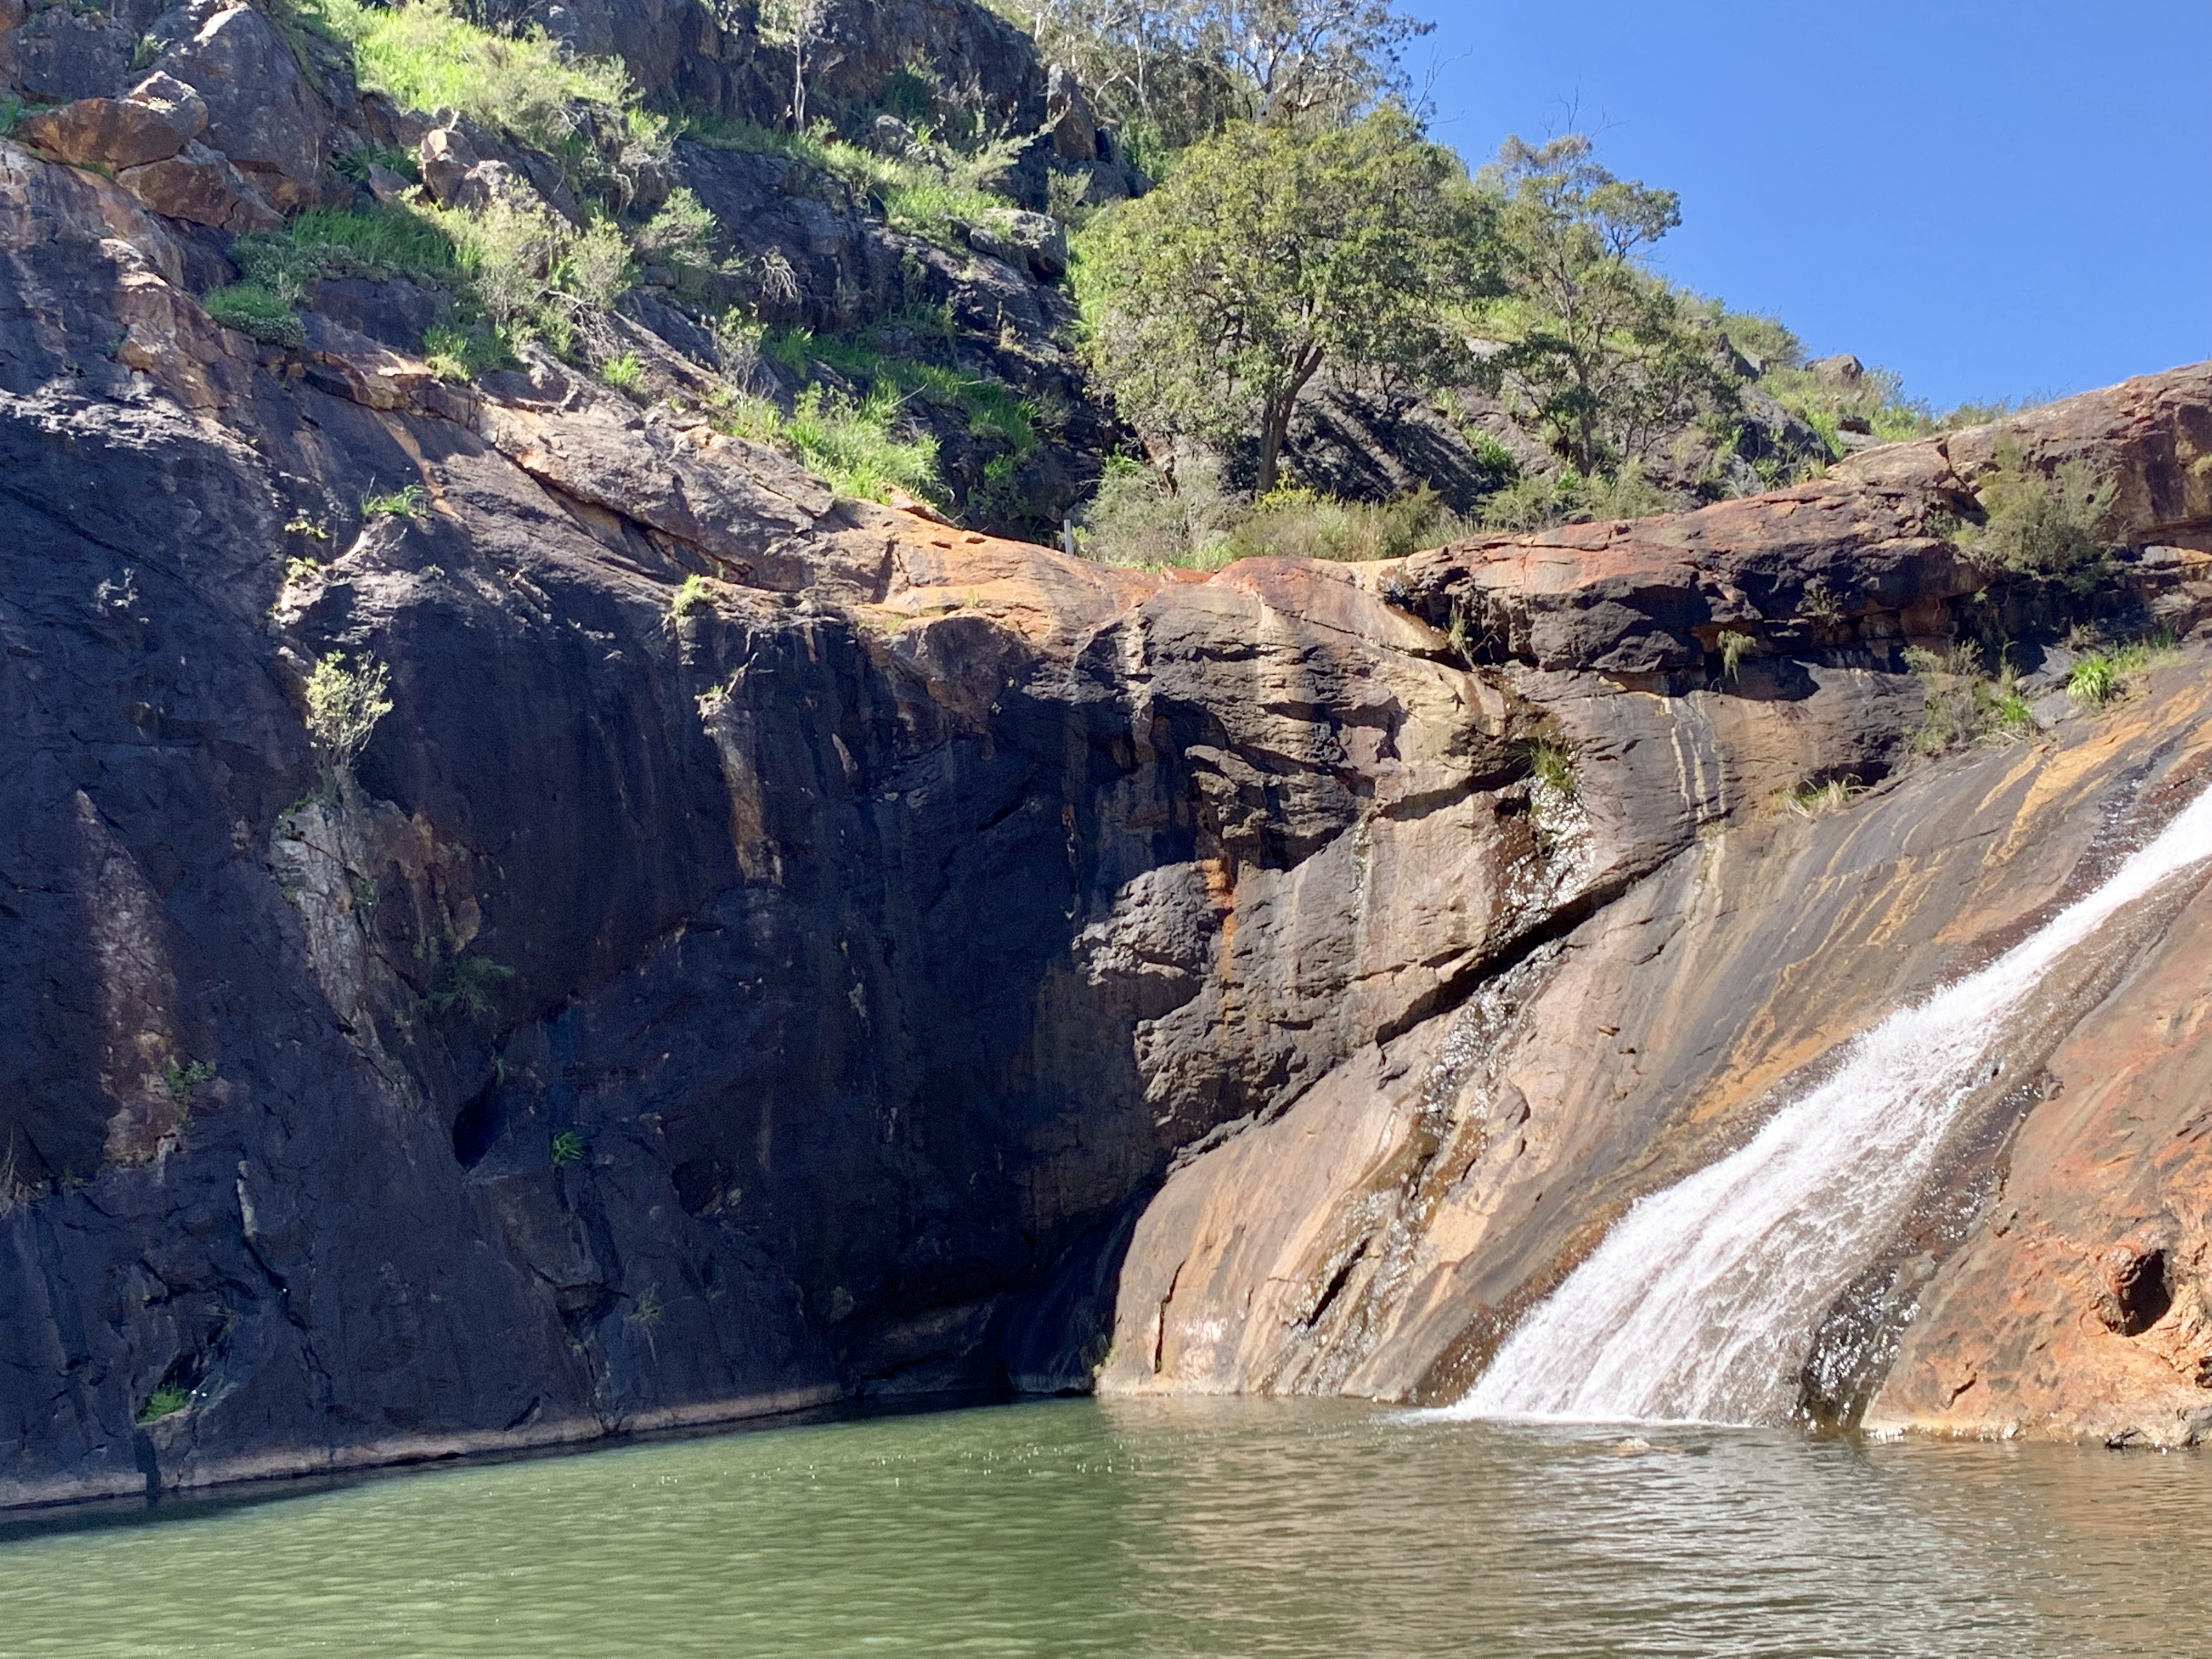 Serpentine falls national park at the waterfall.